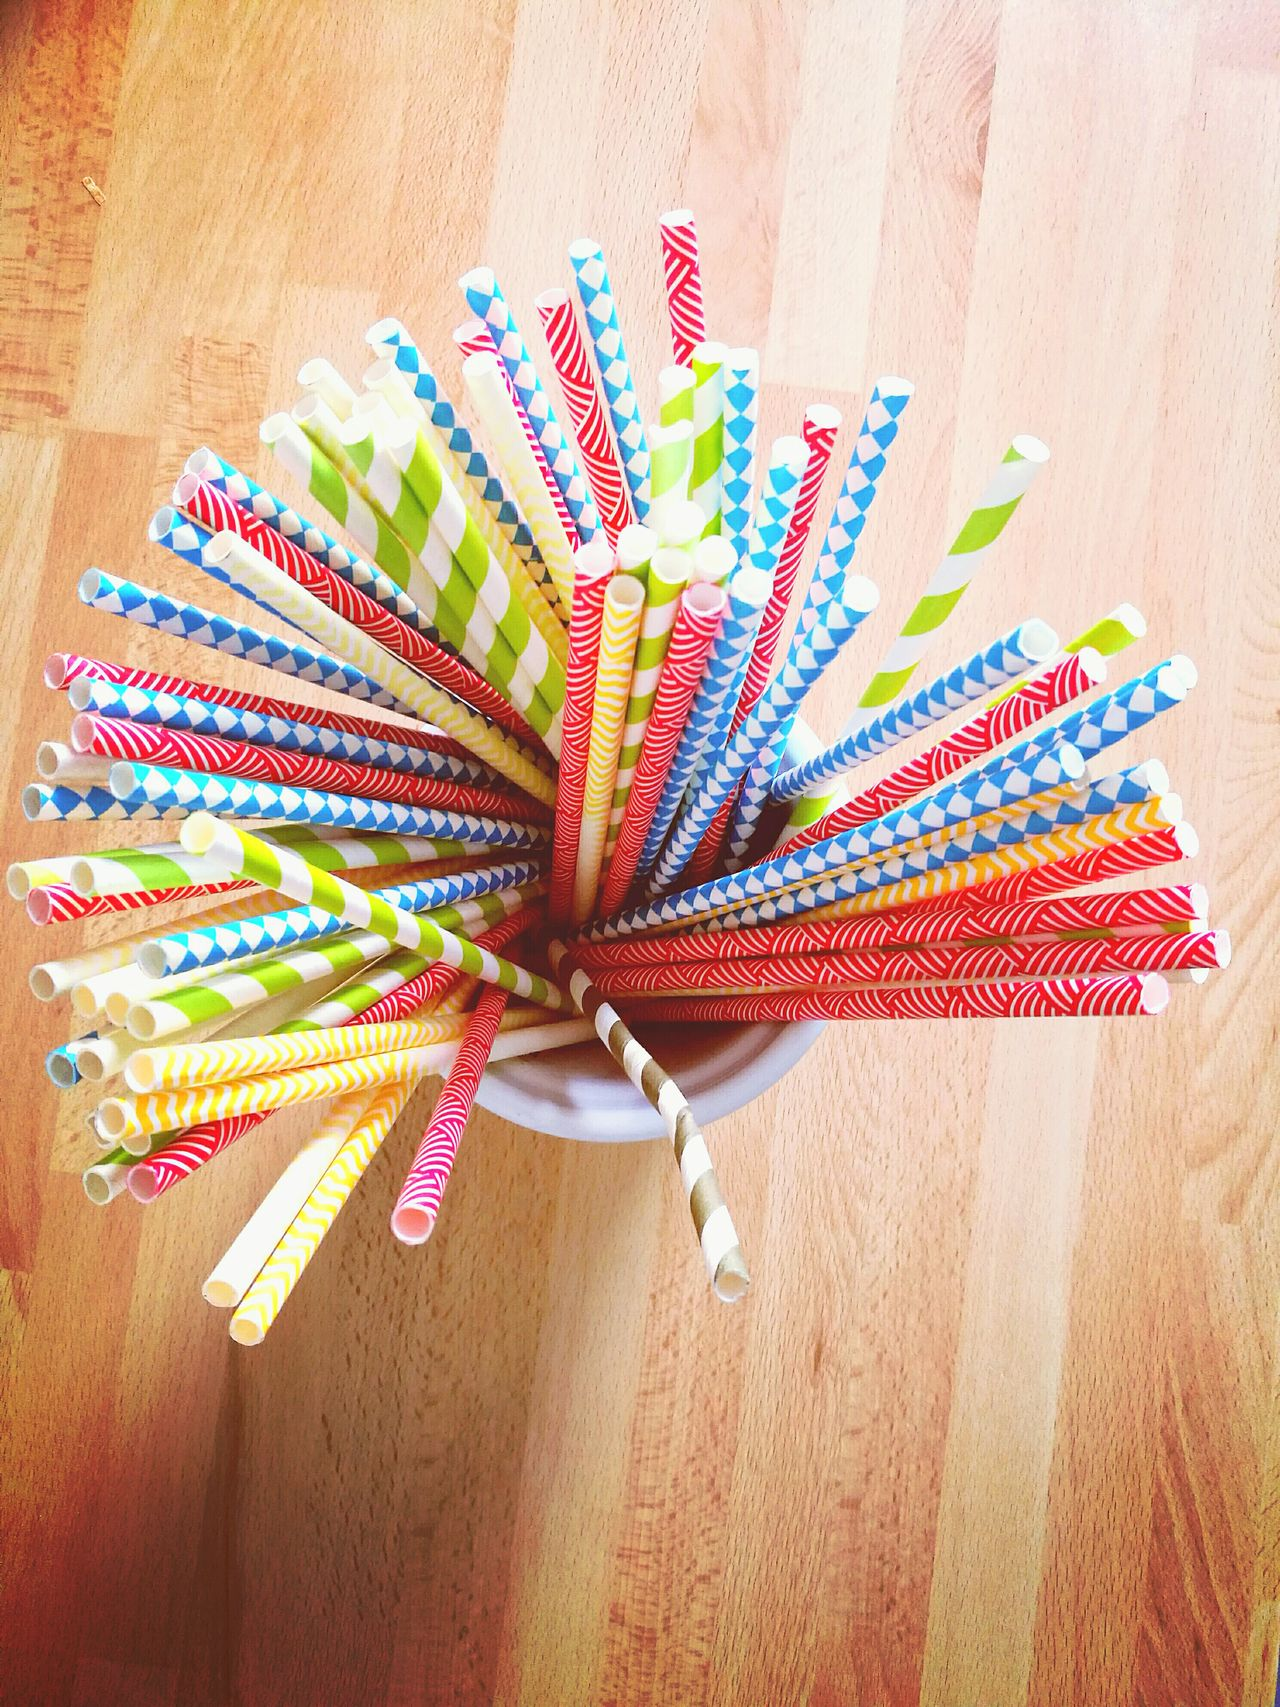 Straw France 🇫🇷 Multi Colored Chitcken Love Design Cocktails🍹 Happy :) Decoration Home Happiness ♡ Food And Drink Sun Colors Red Blue Green Yellow Red Blue Green Fun Inside House Bretagne